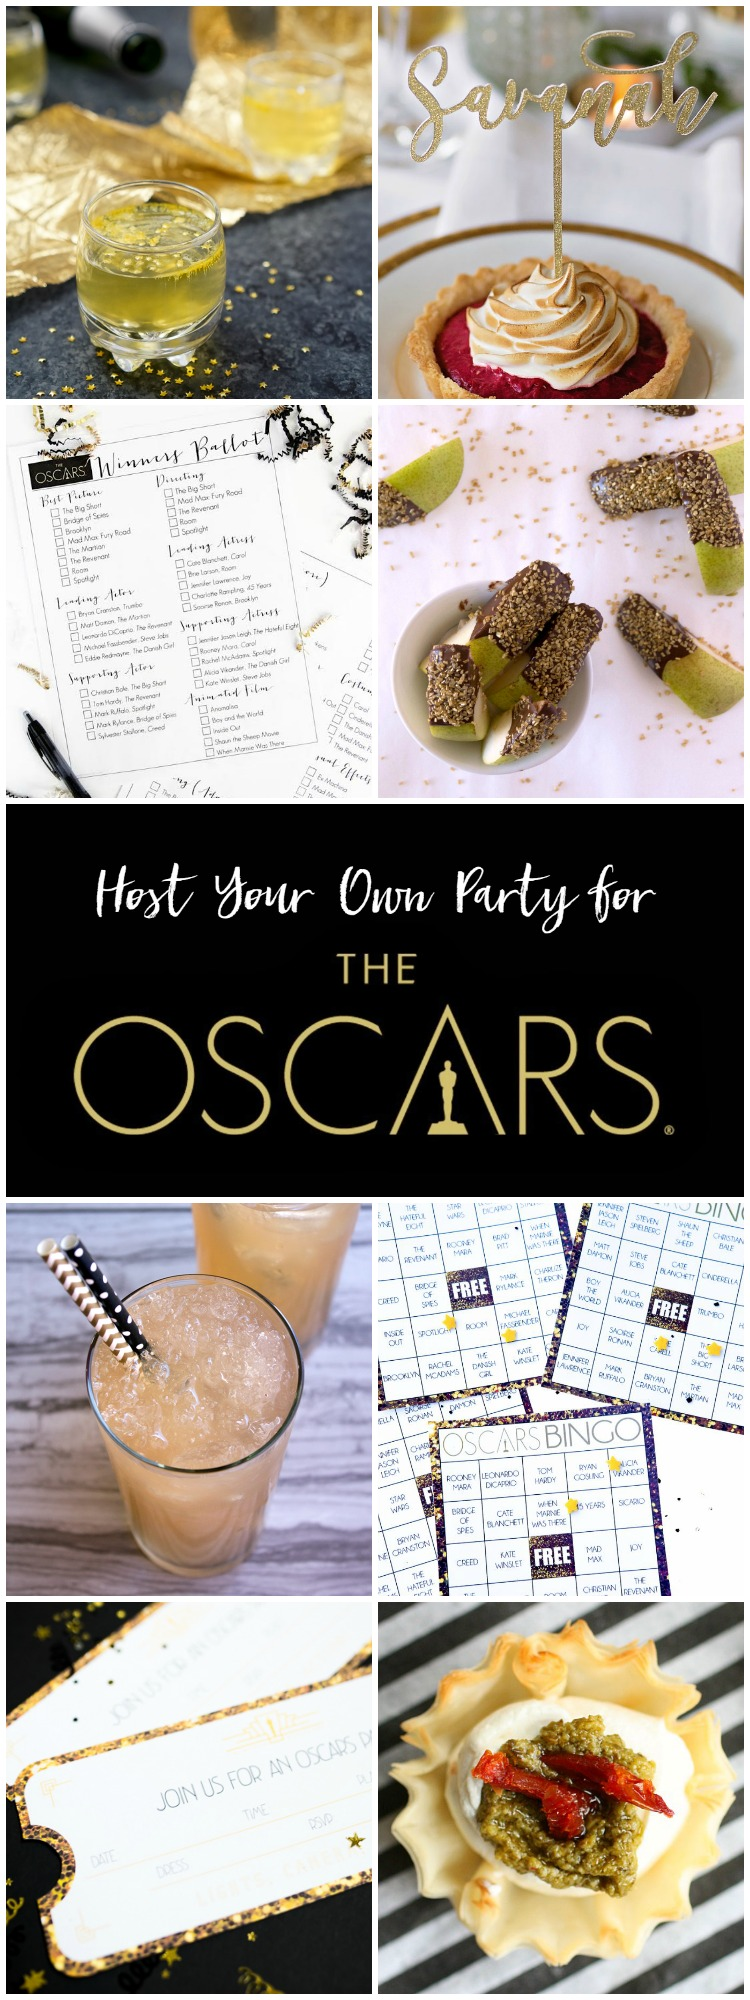 Find everything you need to host your own party for The Oscars!